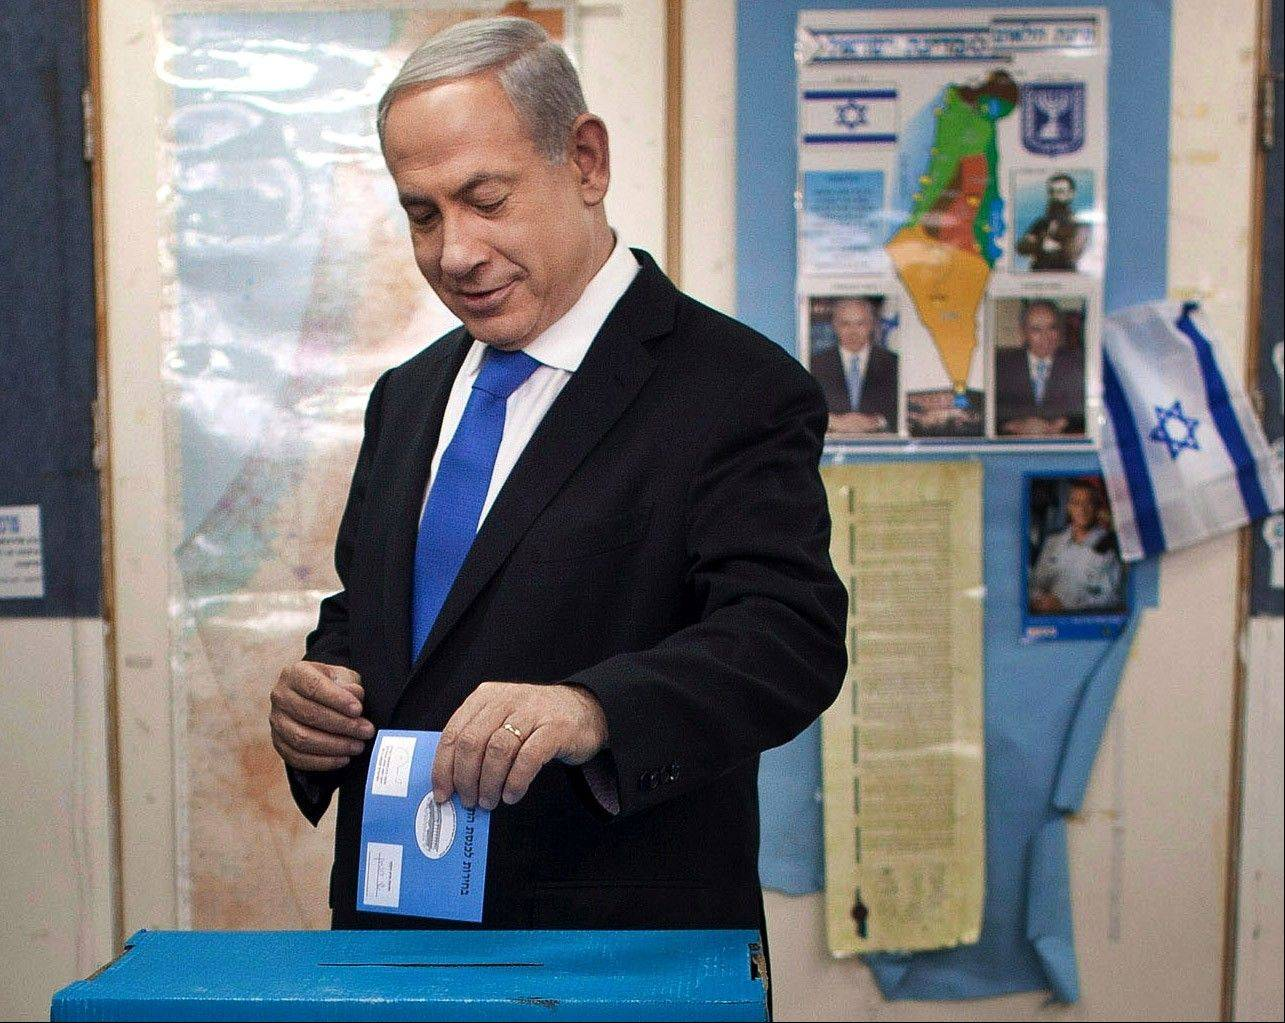 Israeli Prime Minister Benjamin Netanyahu casts his ballot, together with his wife Sara, left, and sons Yair and Avner, background left, at a polling station in Jerusalem on Tuesday.